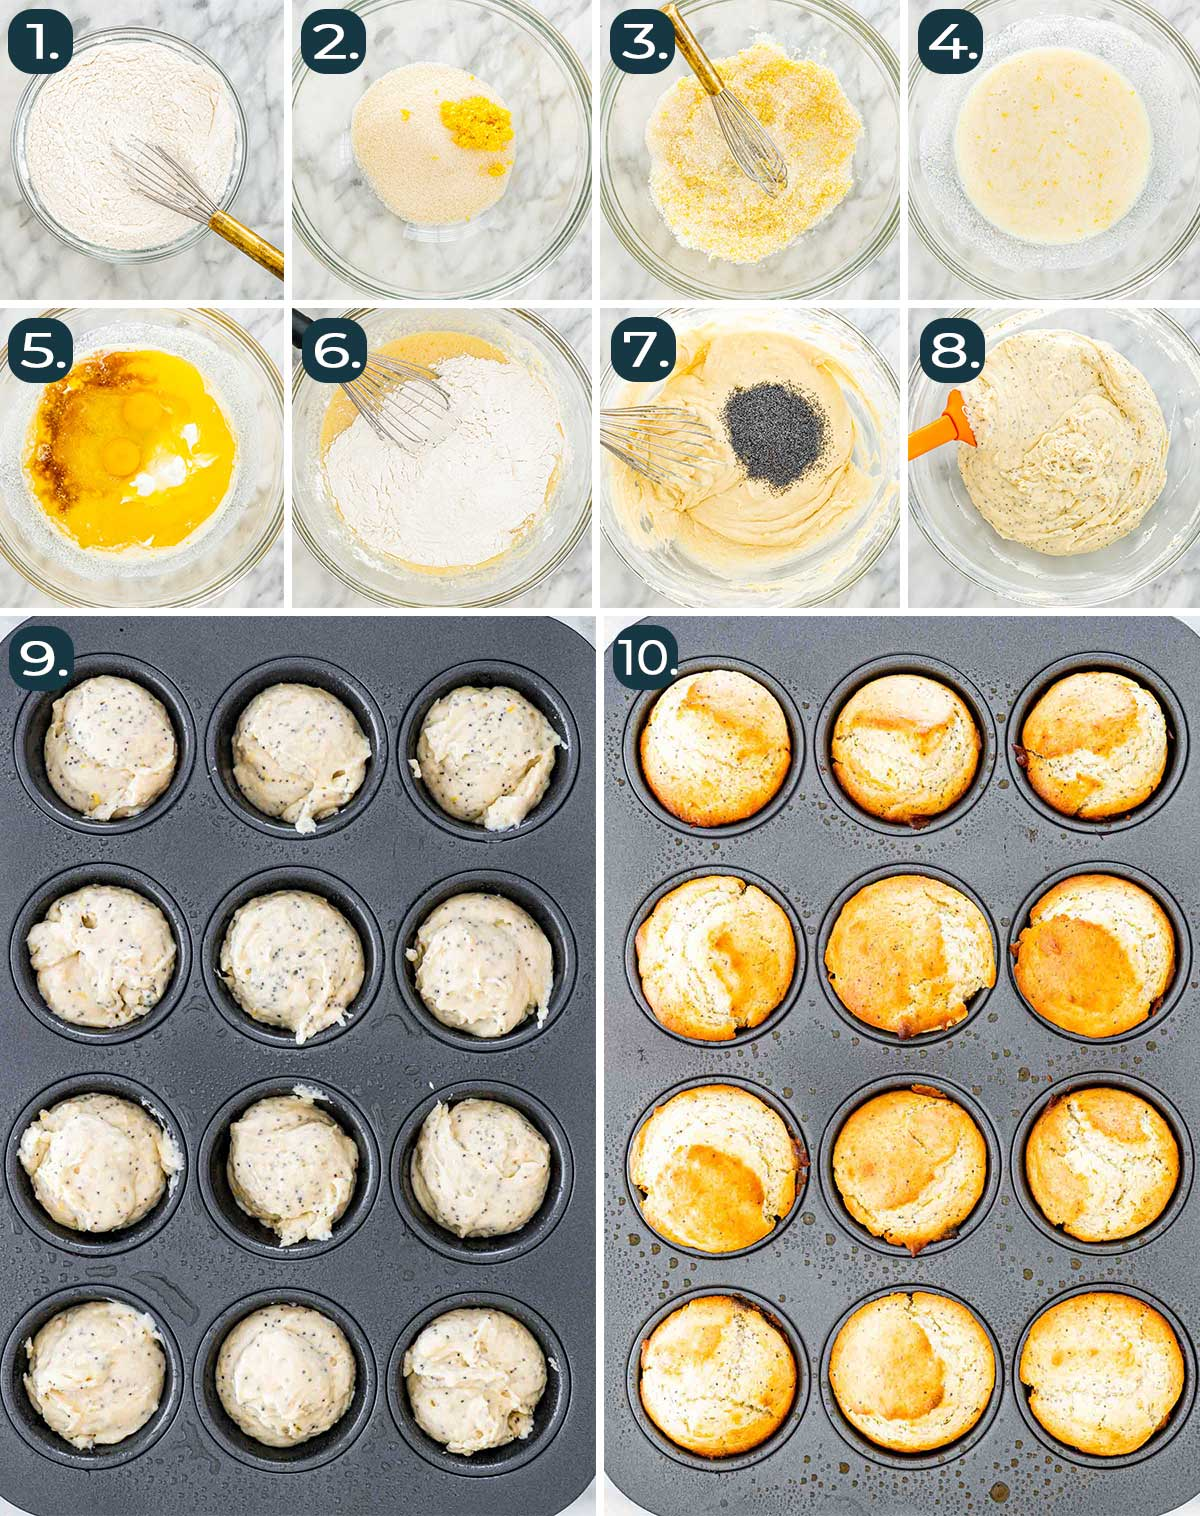 process shots showing how to make lemon poppy seed muffins with lemon glaze